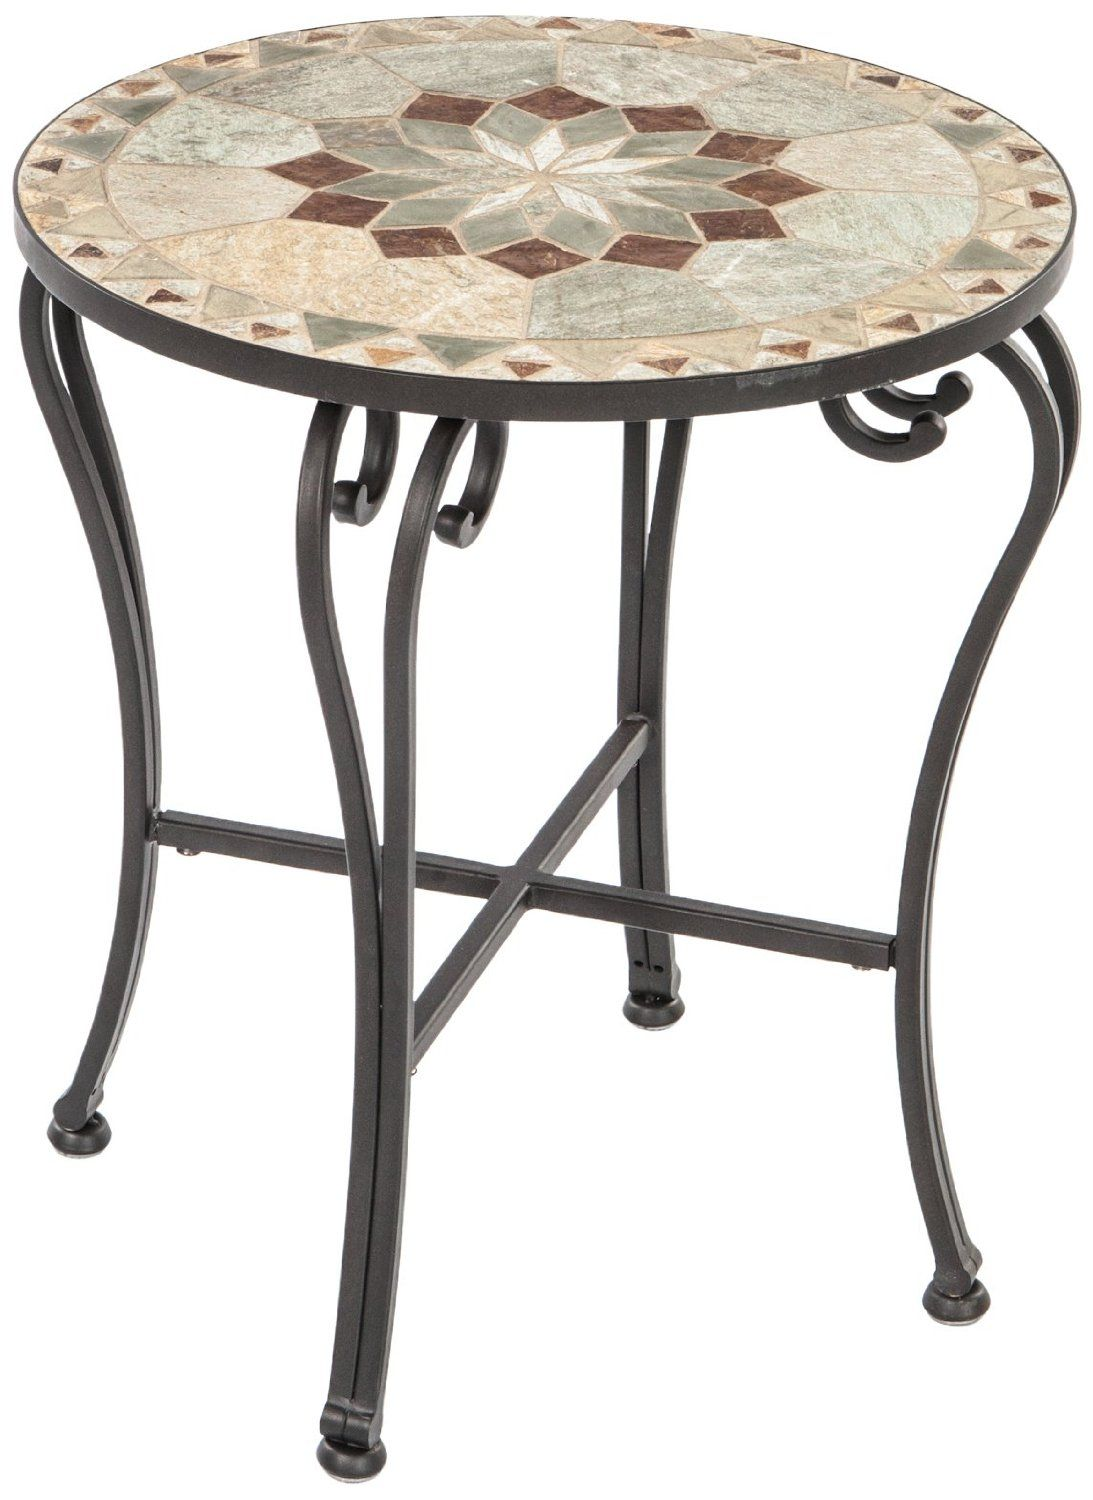 amazoncom alfresco home notre dame indoor outdoor marble mosaic side table patio